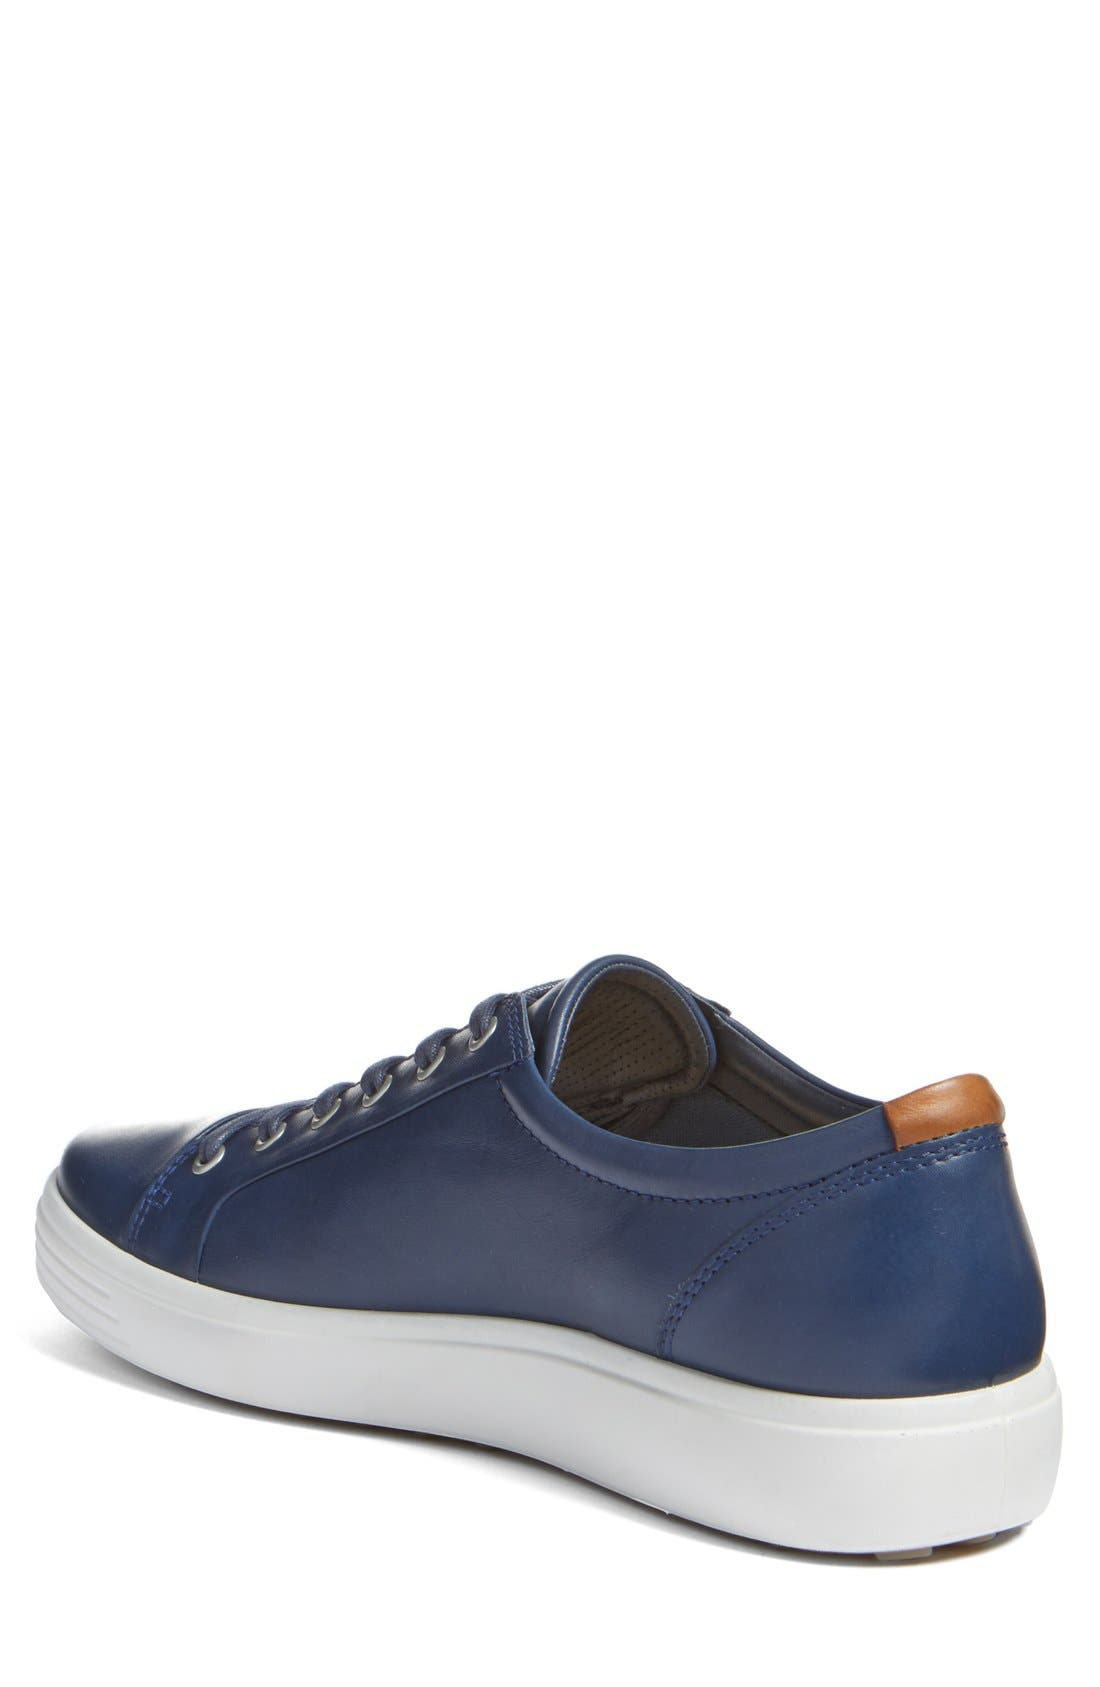 Soft VII Lace-Up Sneaker,                             Alternate thumbnail 3, color,                             NAVY LEATHER